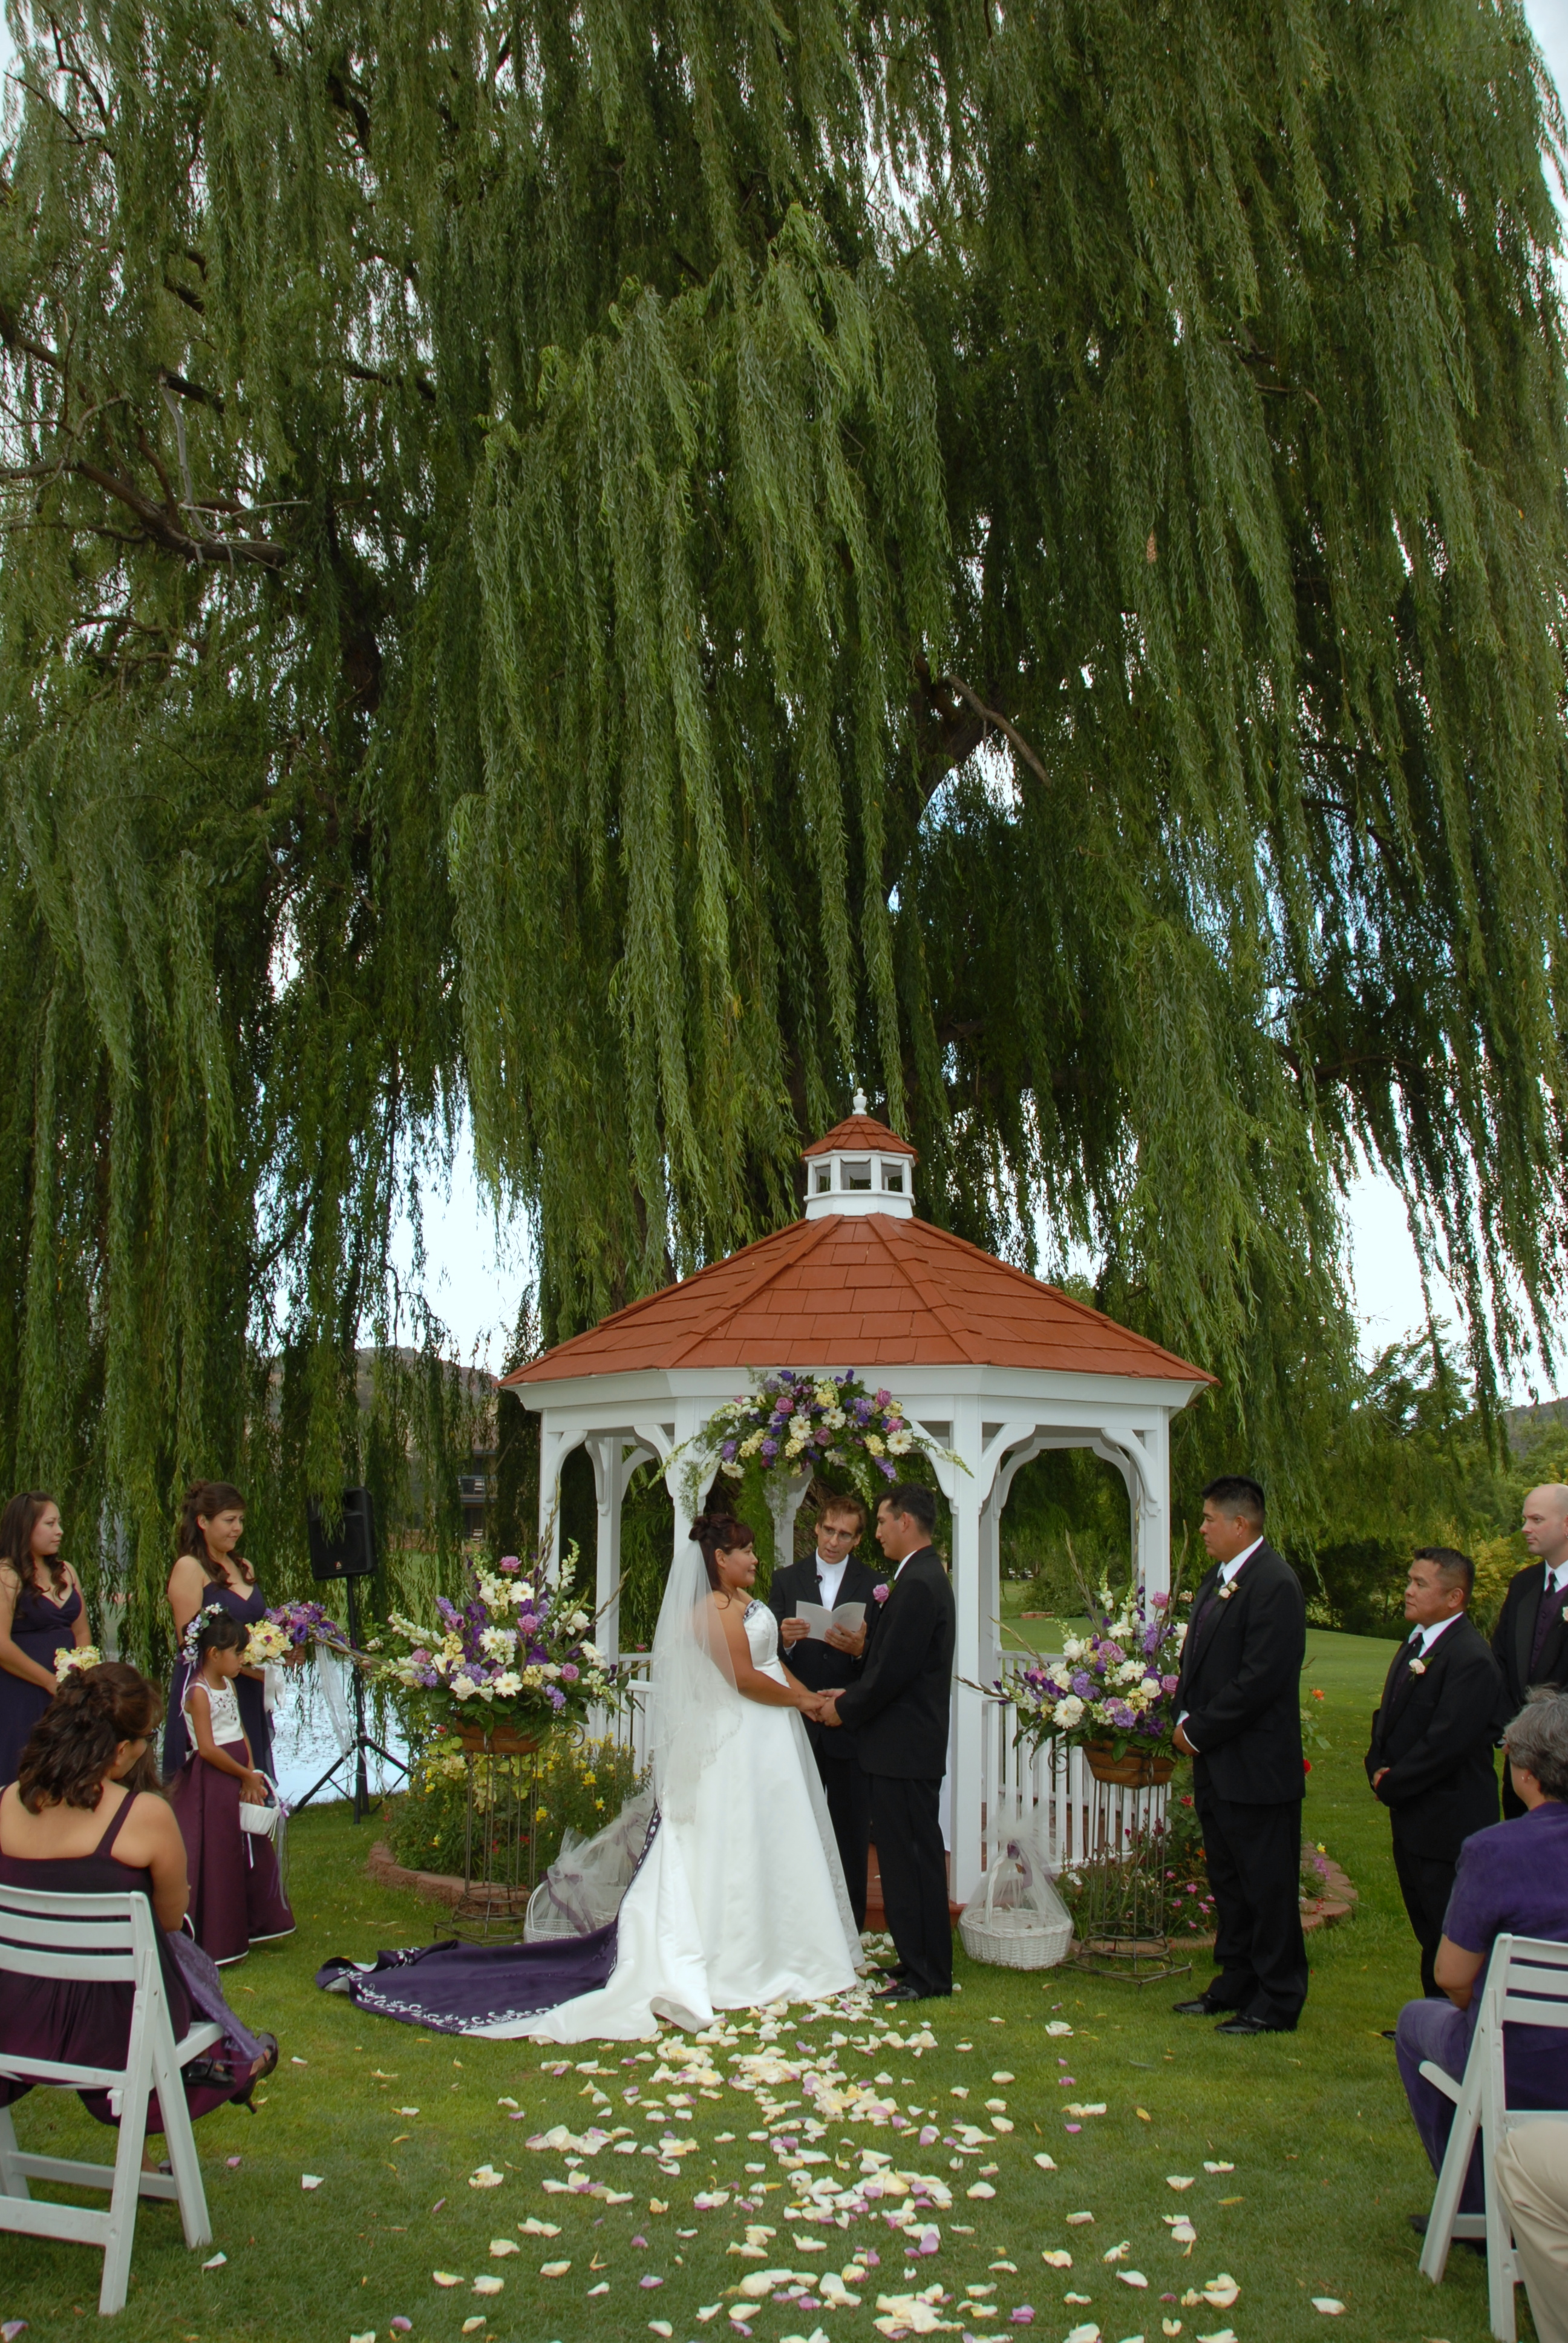 We Are Happy To Announce That Poco Diablo Resort Is Among The Very Best Wedding Venues Within WeddingWire Network Which Includes Leading